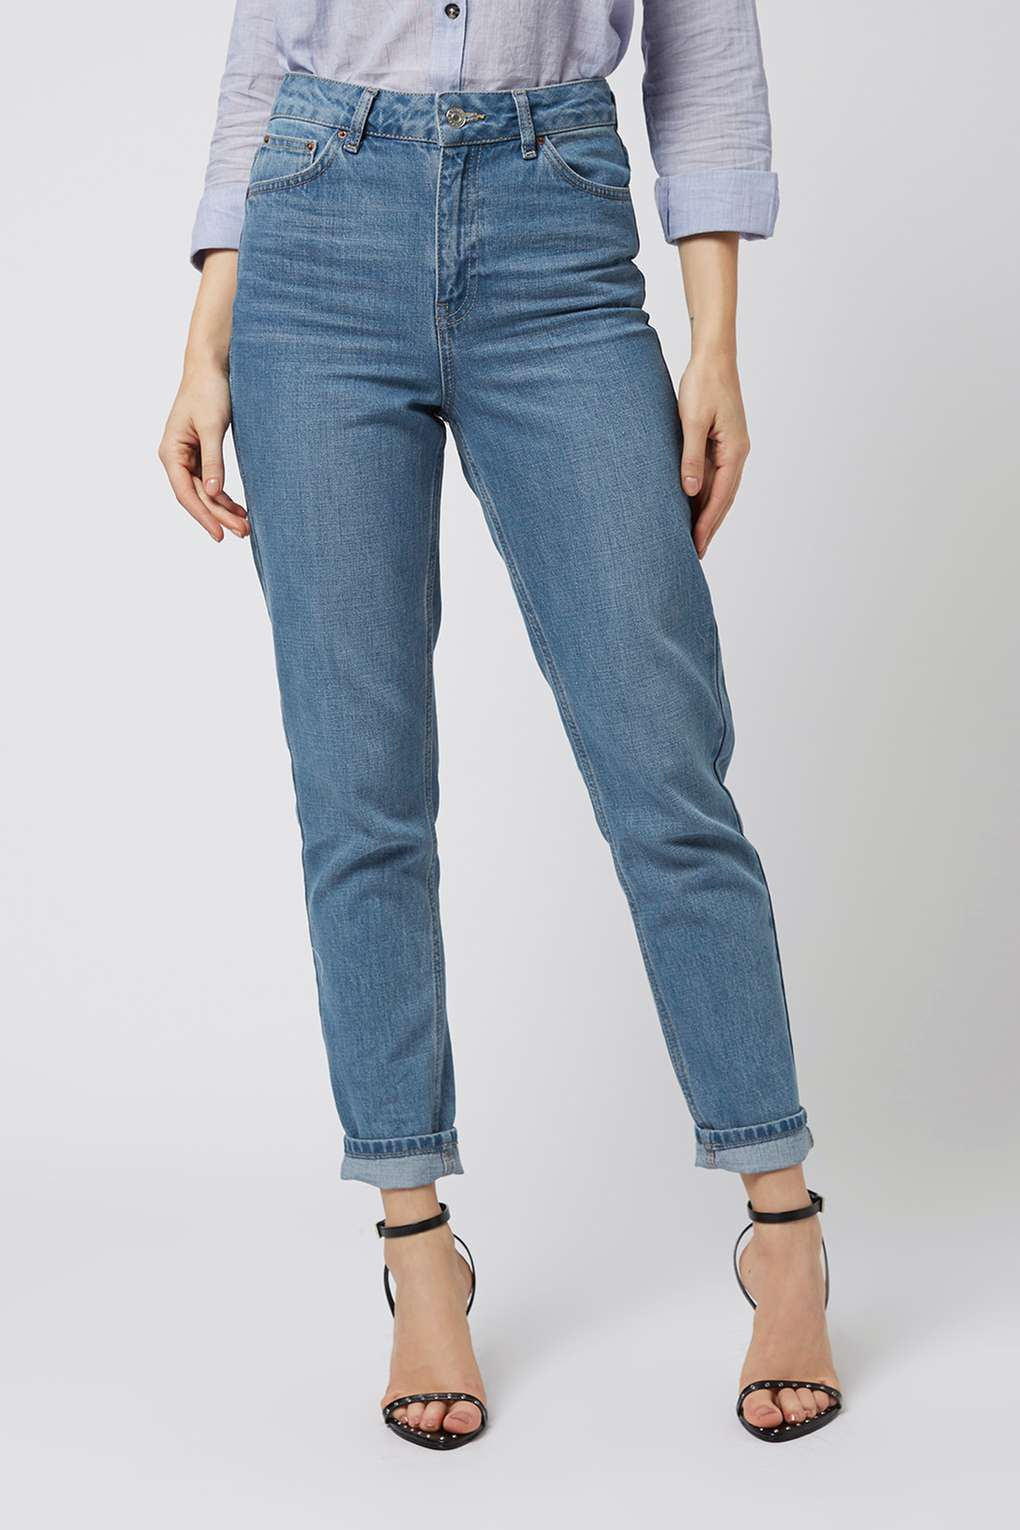 moto pretty blue mom jeans - topshop usa jxukxgb